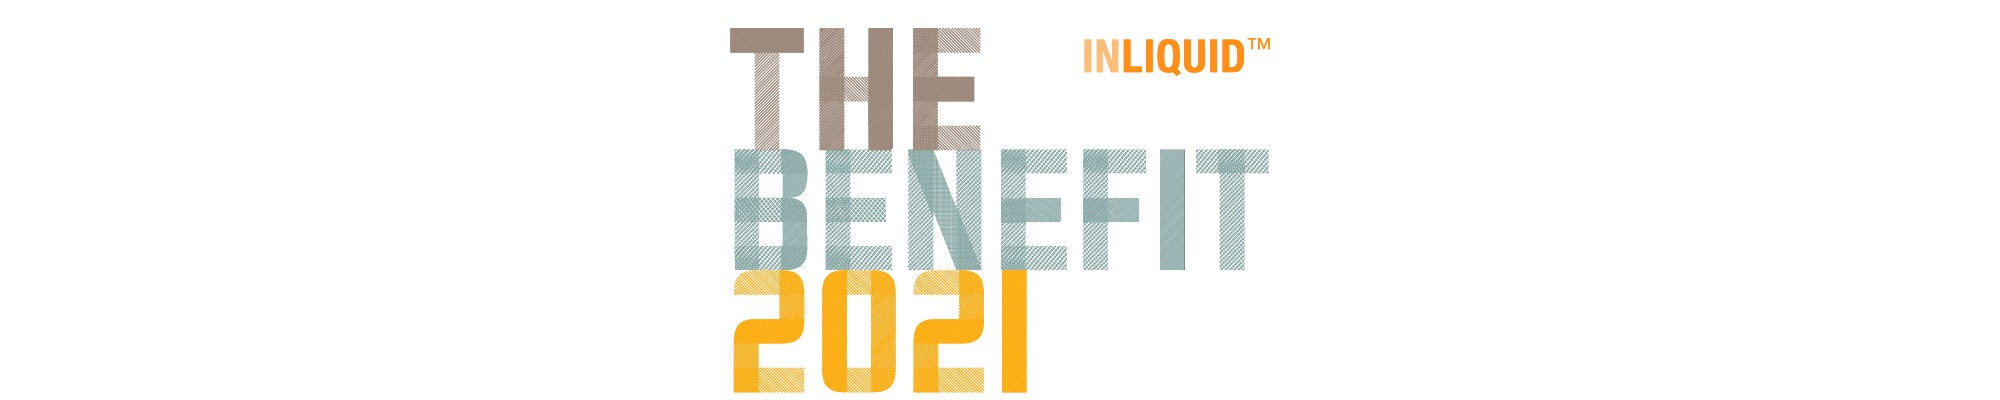 The InLiquid 2021 Benefit Silent Art Auction